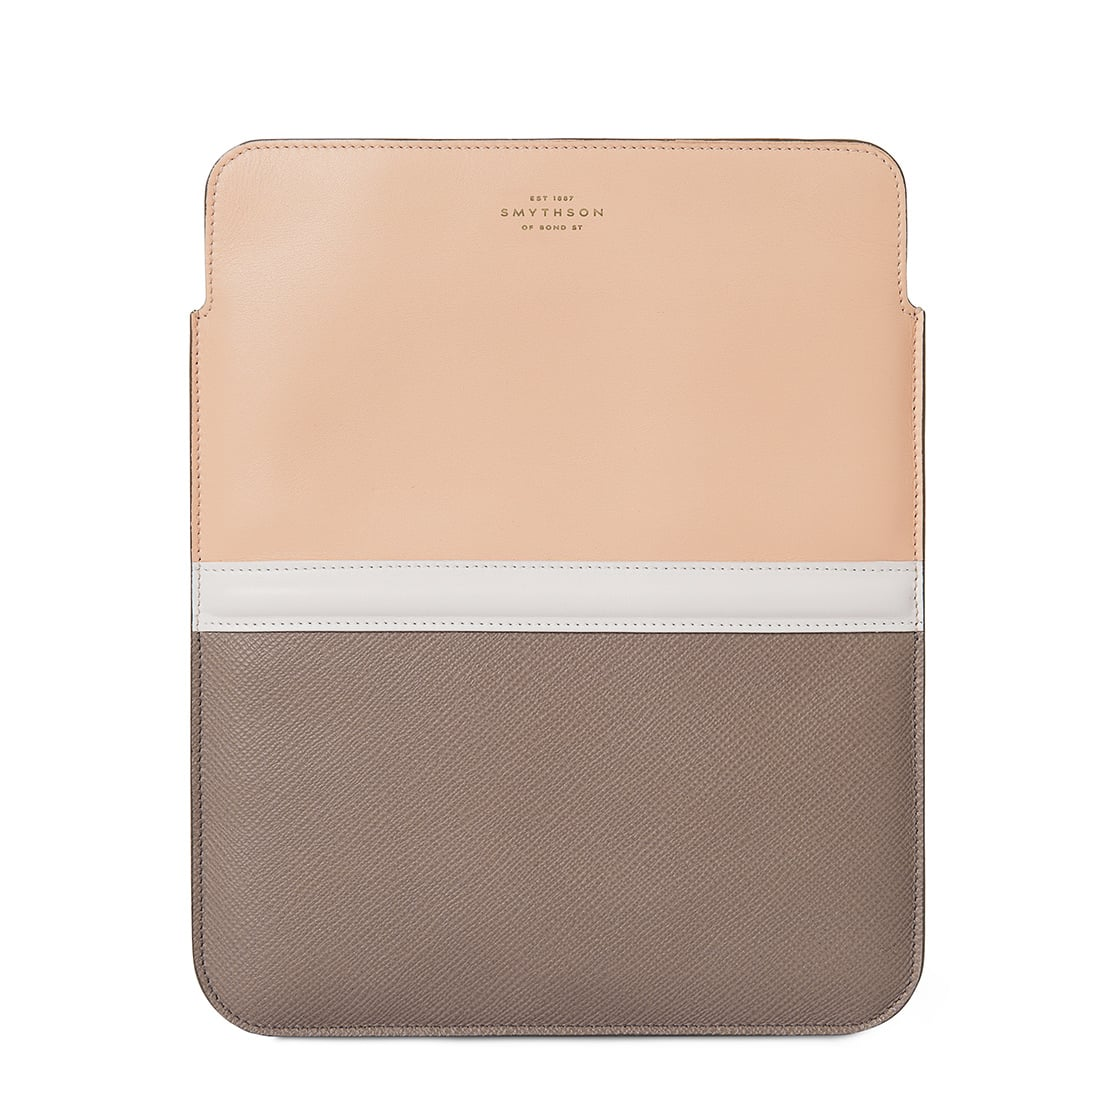 Leather ipad case Coach Navy in Leather - 3811252 | 1100x1100